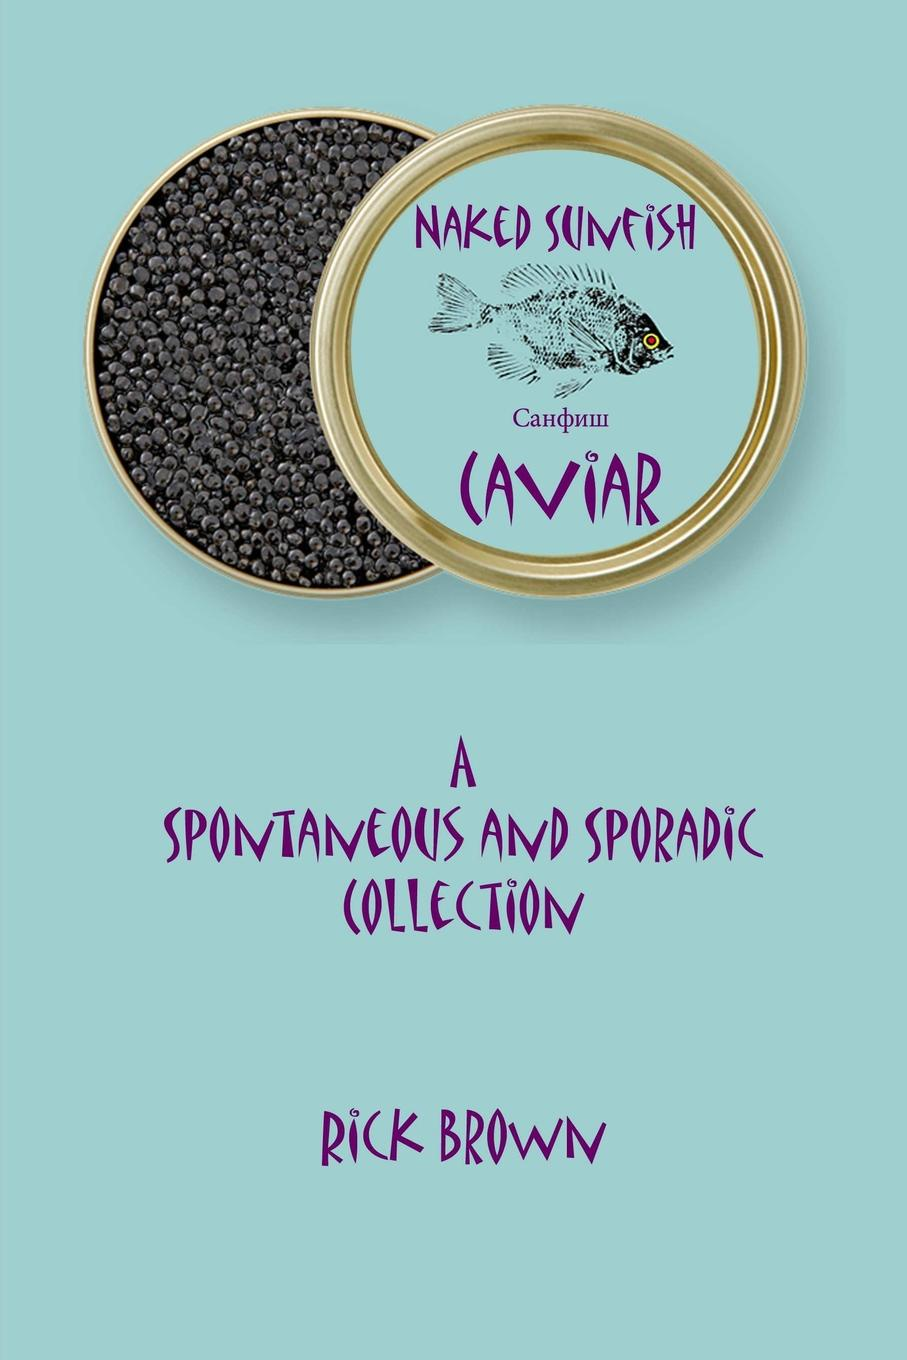 Rick Brown Naked Sunfish - Caviar anstey f mr punch s pocket ibsen – a collection of some of the master s best known dramas